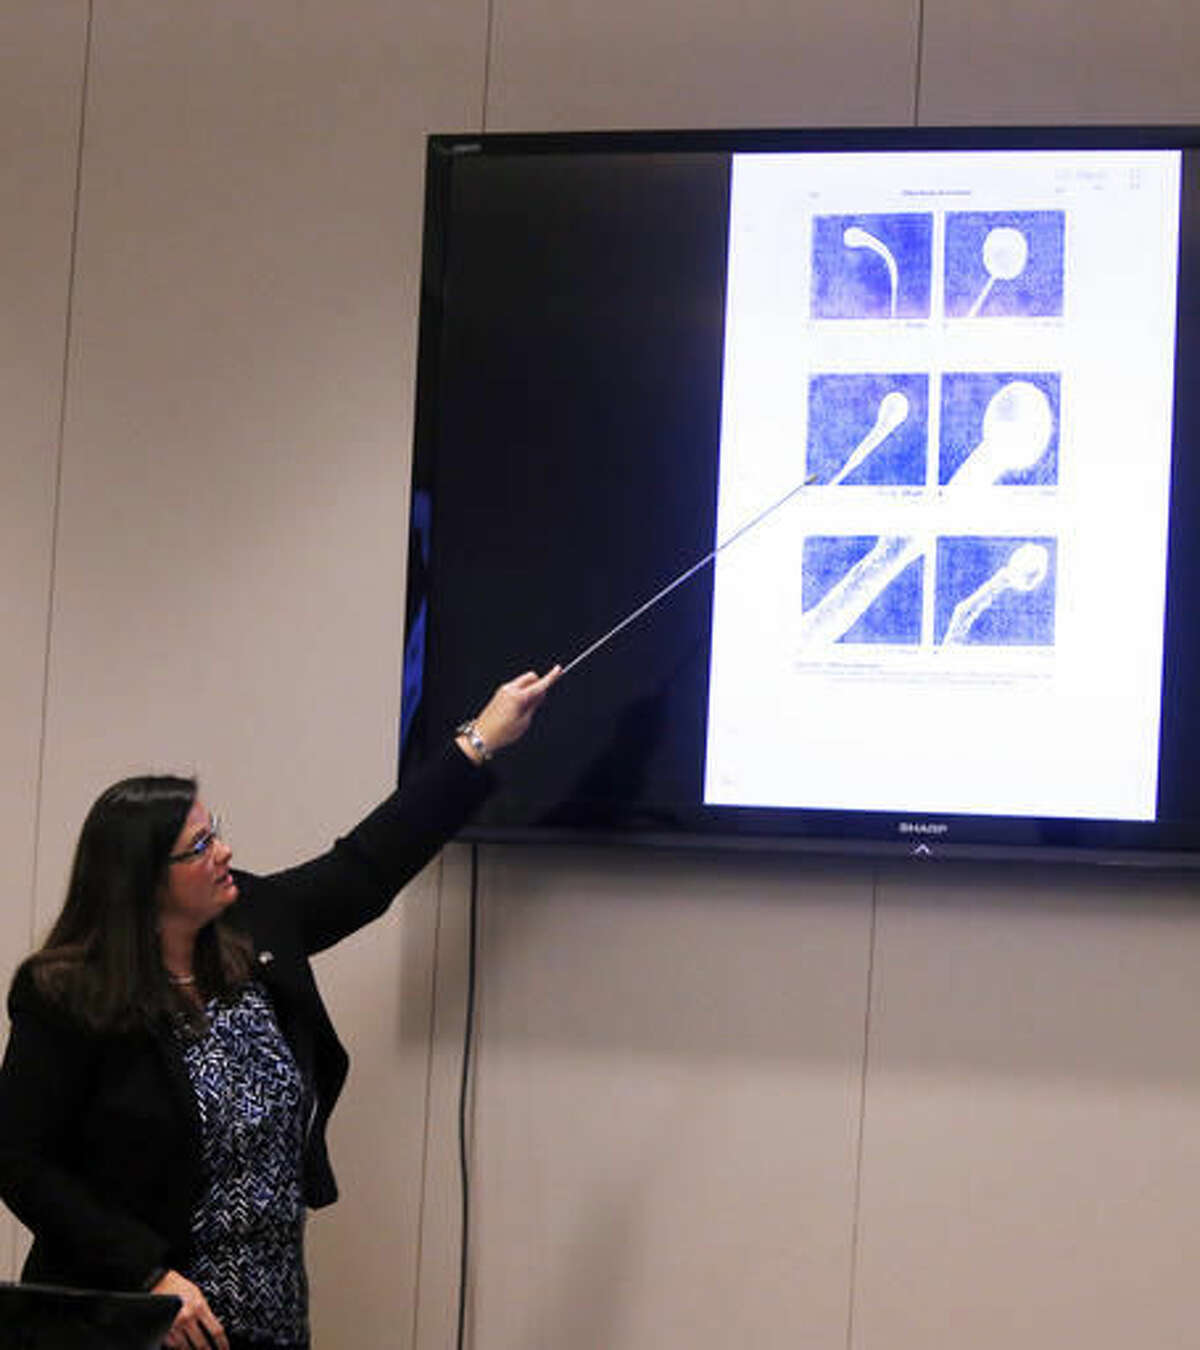 State Law Enforcement Division trace evidence examiner Megan Fletcher makes a presentation in the murder trial of former North Charleston police officer Michael Slager at the Charleston County court in Charleston, S.C., Monday, Nov. 21, 2016. Slager is charged in the April 2015 shooting death of 50-year-old Walter Scott as Scott fled from a traffic stop. (Grace Beahm/Post and Courier via AP, Pool)